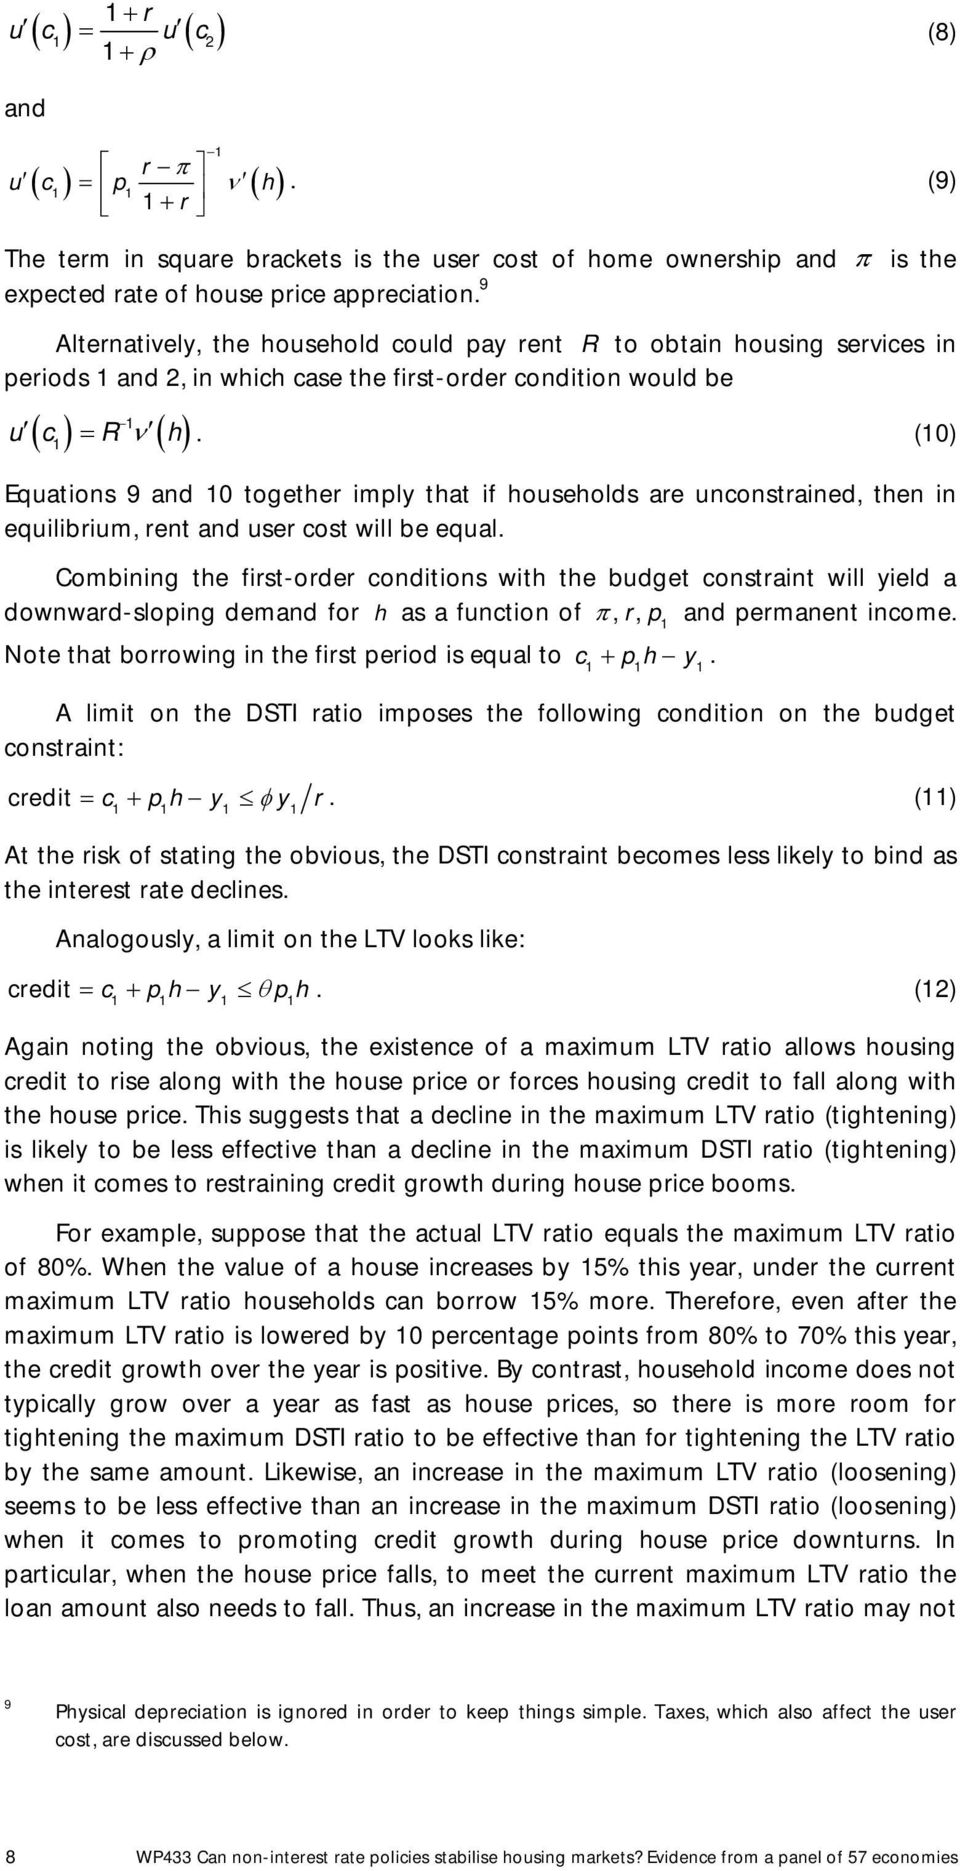 (0) Equations 9 and 0 together imply that if households are unconstrained, then in equilibrium, rent and user cost will be equal.